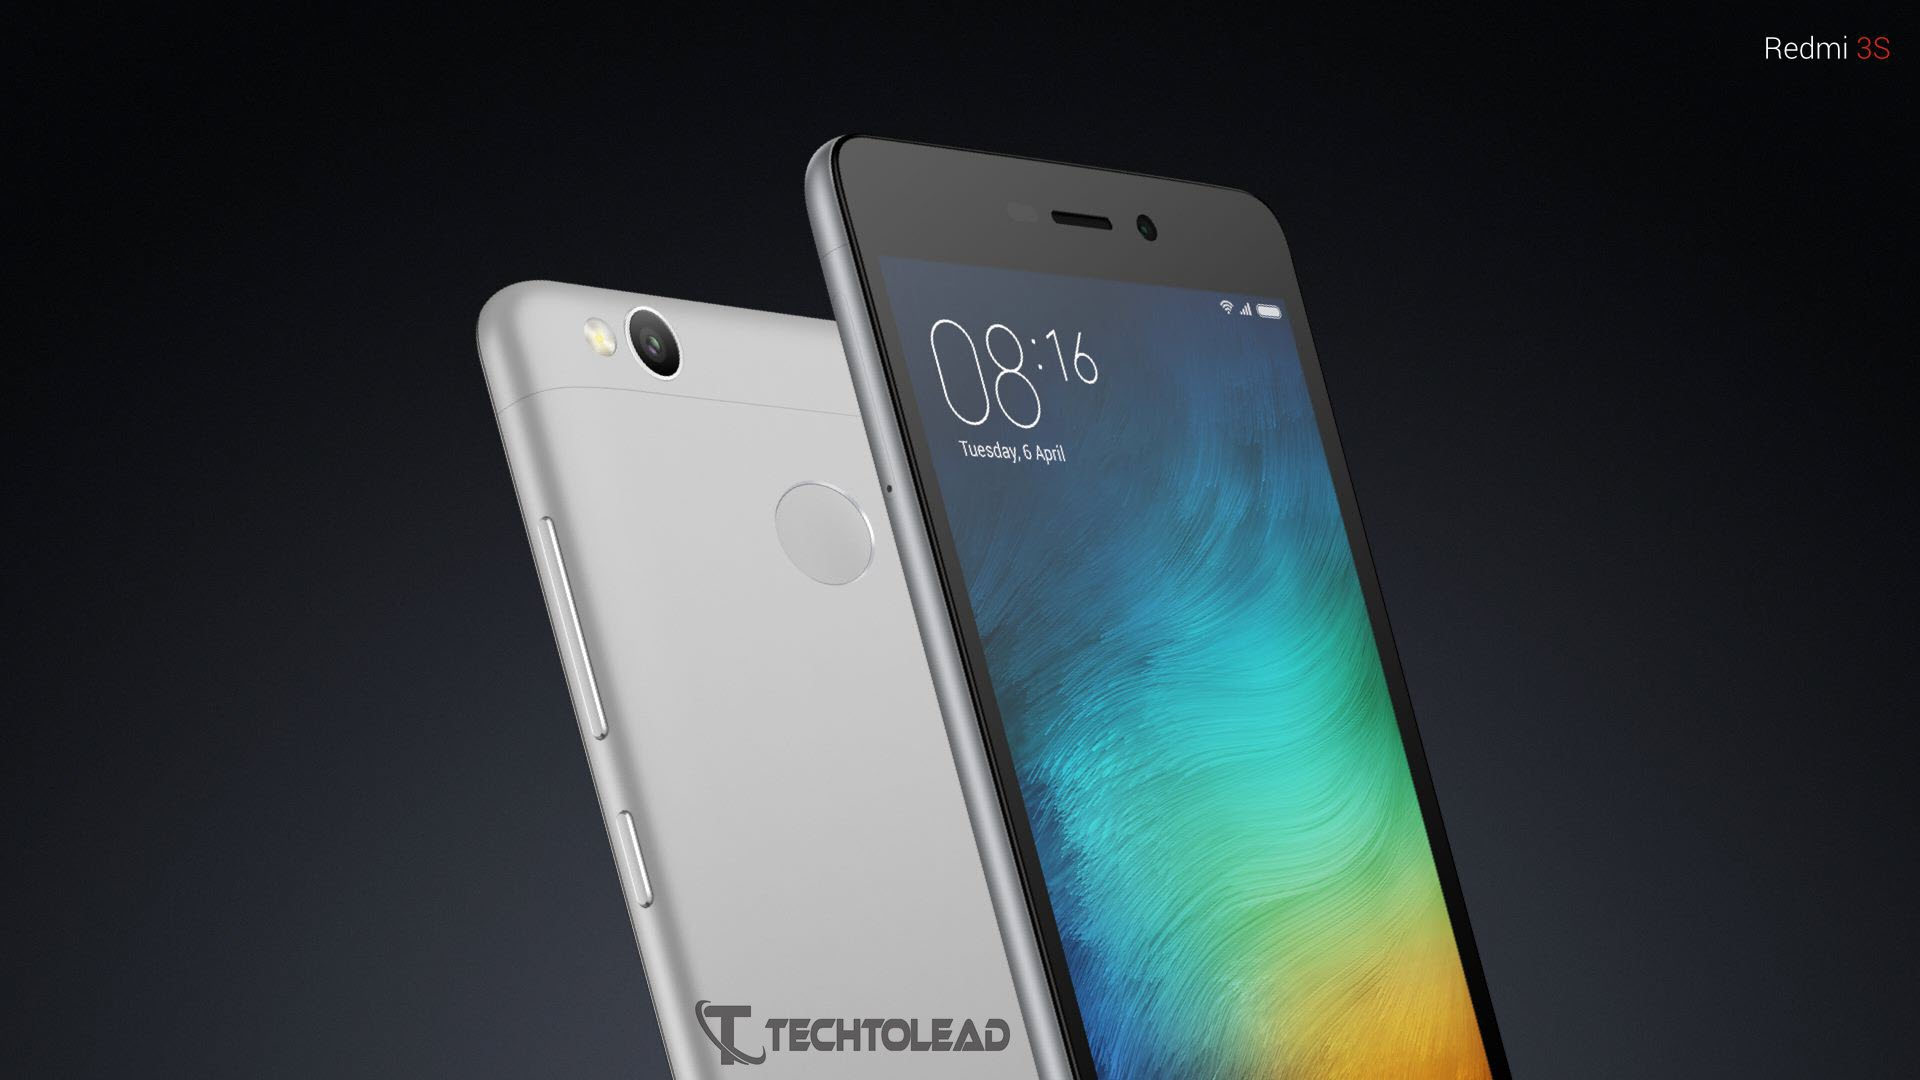 Xiaomi Redmi 3S And Redmi 3S Prime Launched In India